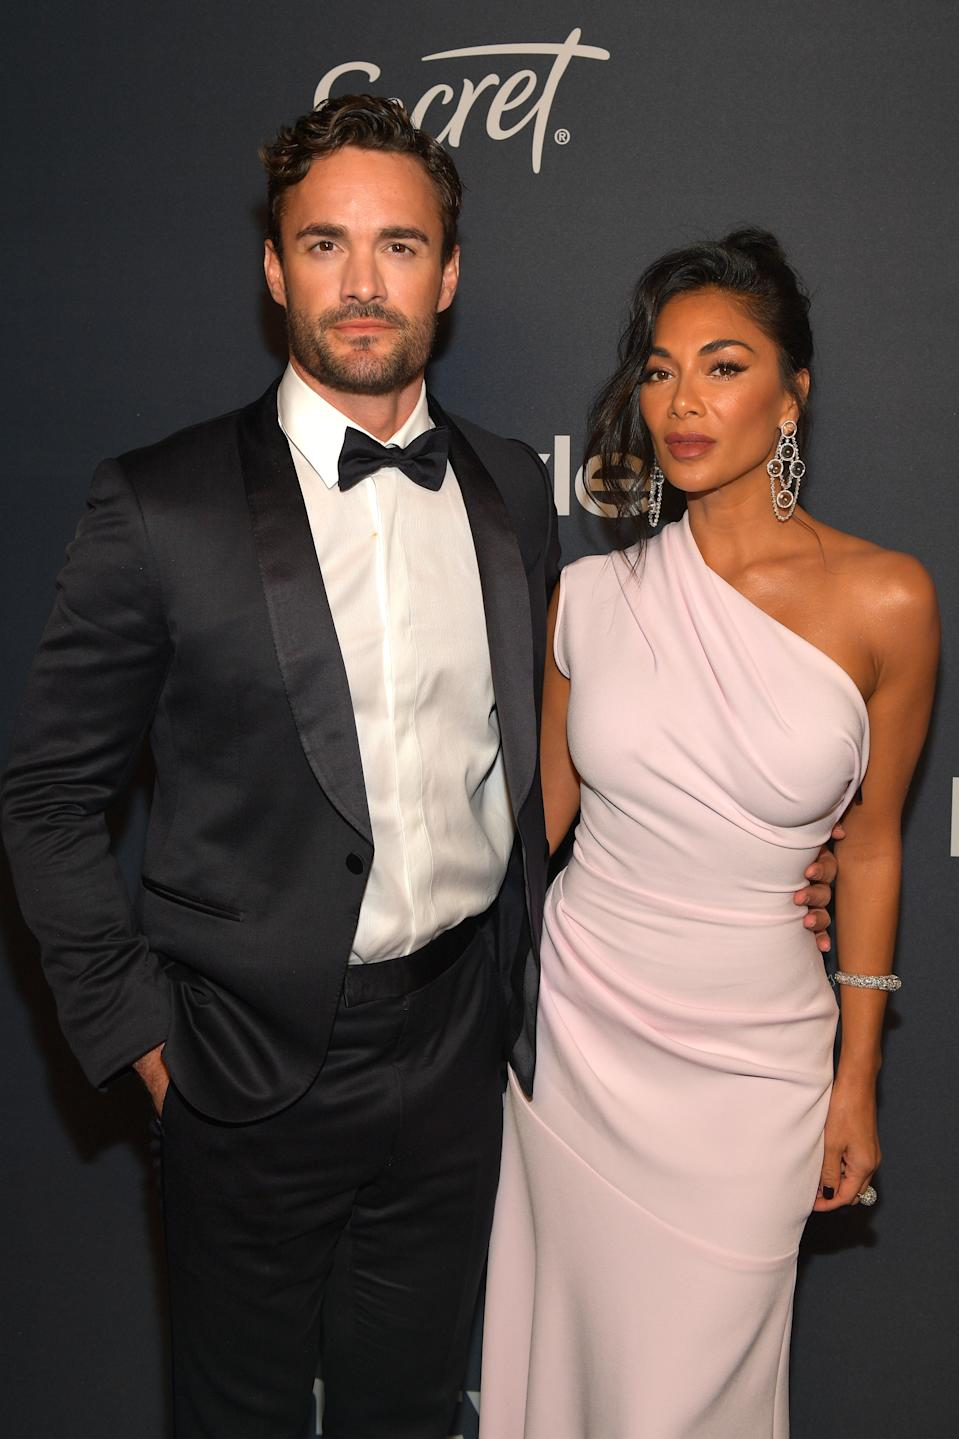 Thom Evans and Nicole Scherzinger attend The 2020 InStyle And Warner Bros. 77th Annual Golden Globe Awards Post-Party at The Beverly Hilton Hotel on January 05, 2020 in Beverly Hills, California. (Photo by Matt Winkelmeyer/Getty Images for InStyle)